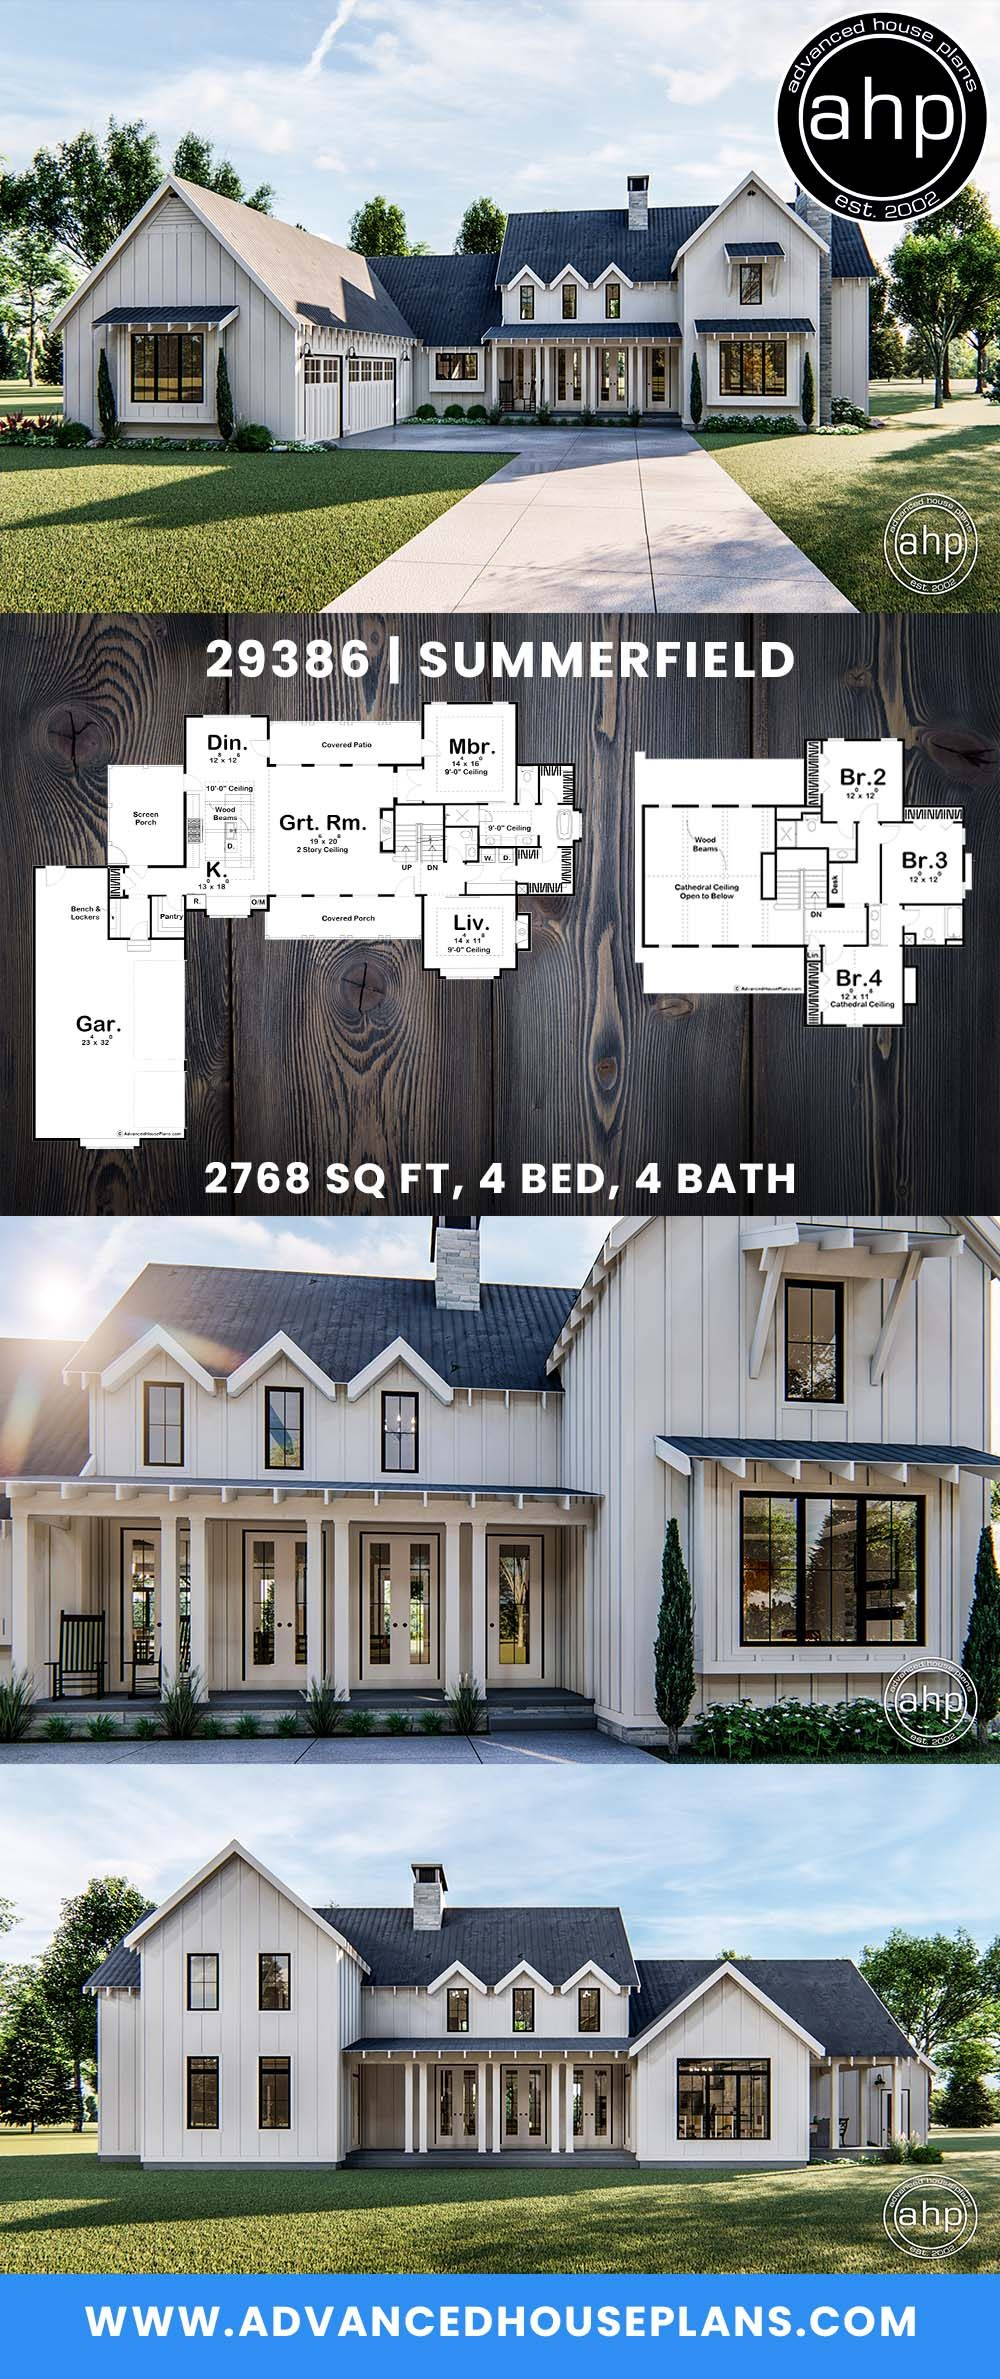 4 bedroom Modern Farmhouse with cathedral ceilings